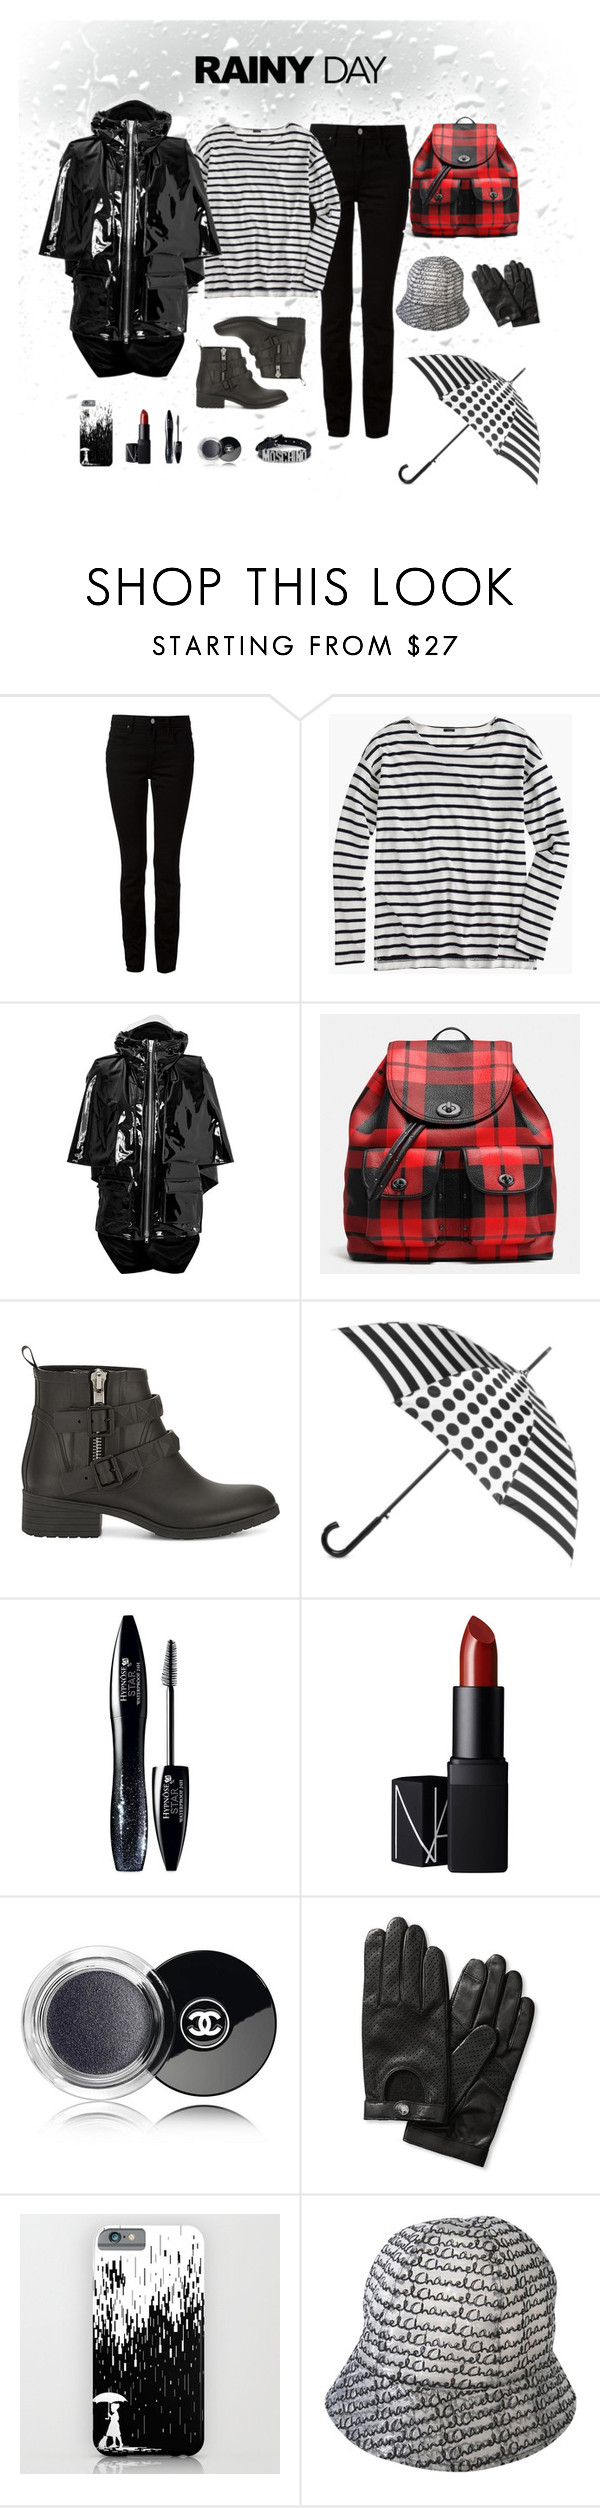 """Rainy Day"" by leahbprice ❤ liked on Polyvore featuring Alexander Wang, J.Crew, Wanda Nylon, Coach, Rebecca Minkoff, Totes, Lancôme, NARS Cosmetics, Chanel and Banana Republic"